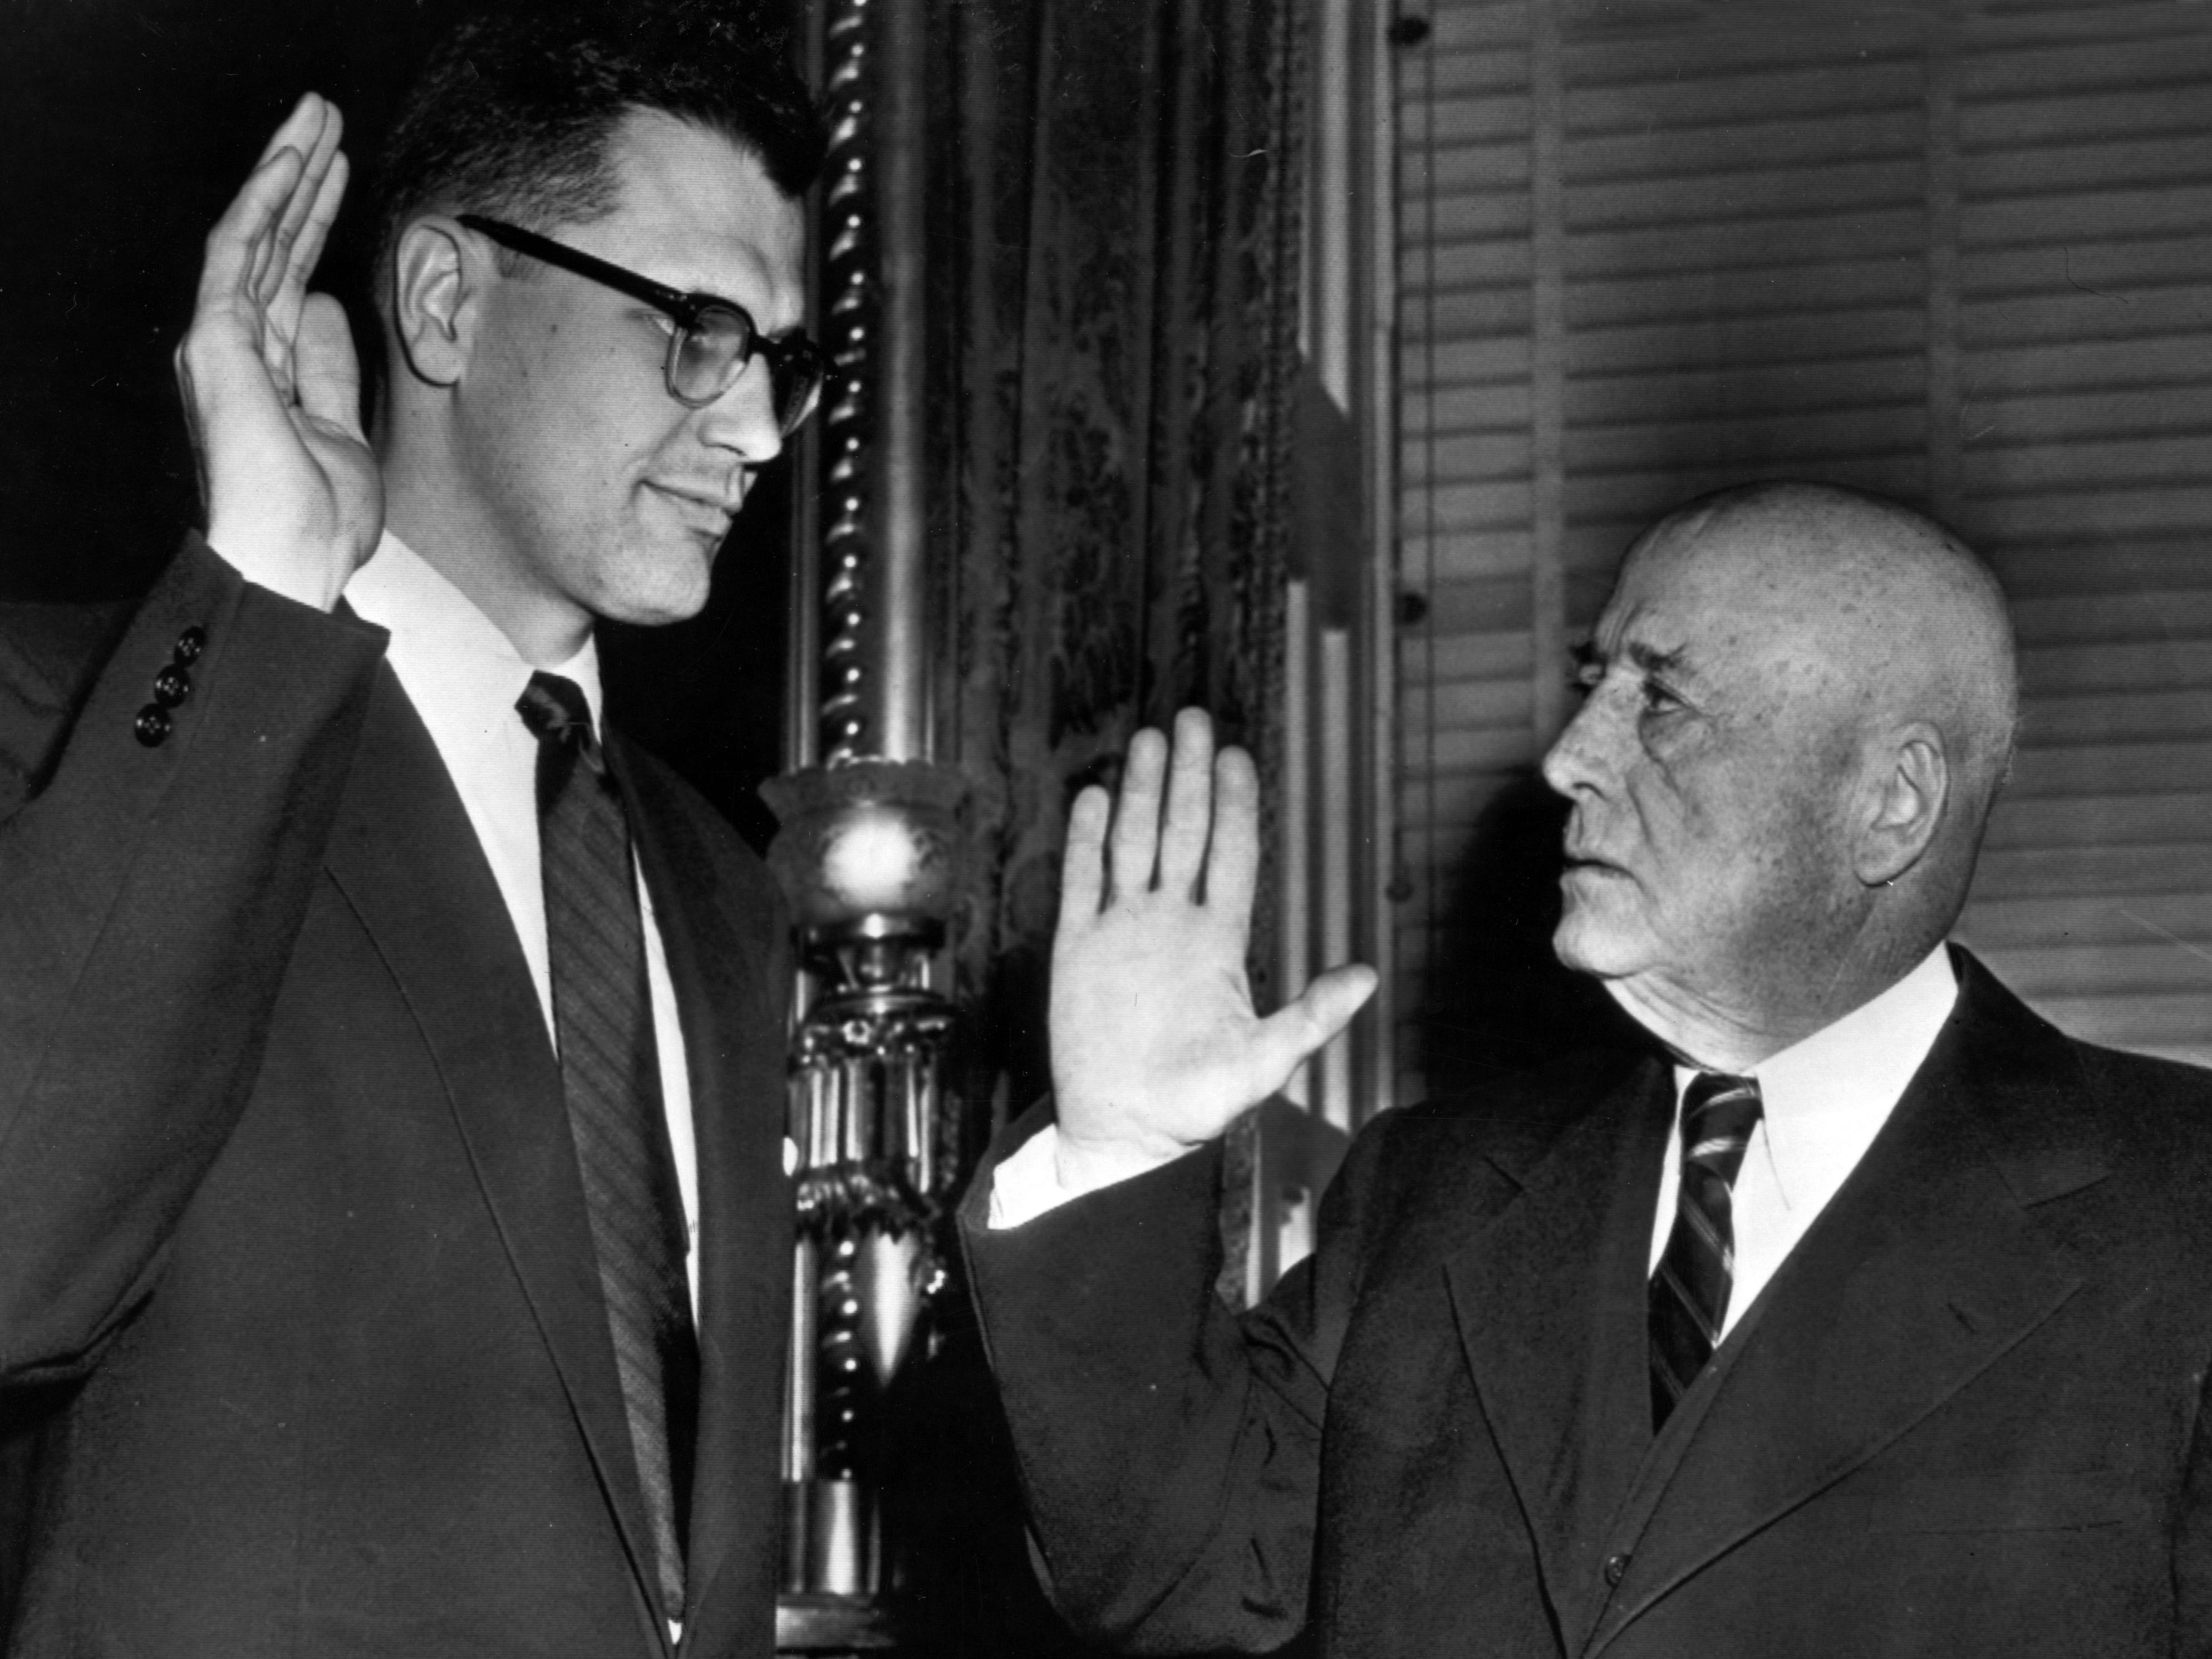 In 1955, John Sr. died and John Jr. won a special election to succeed him in the U.S. House.  Above, Dingell is sworn in as a Congressman in 1956.